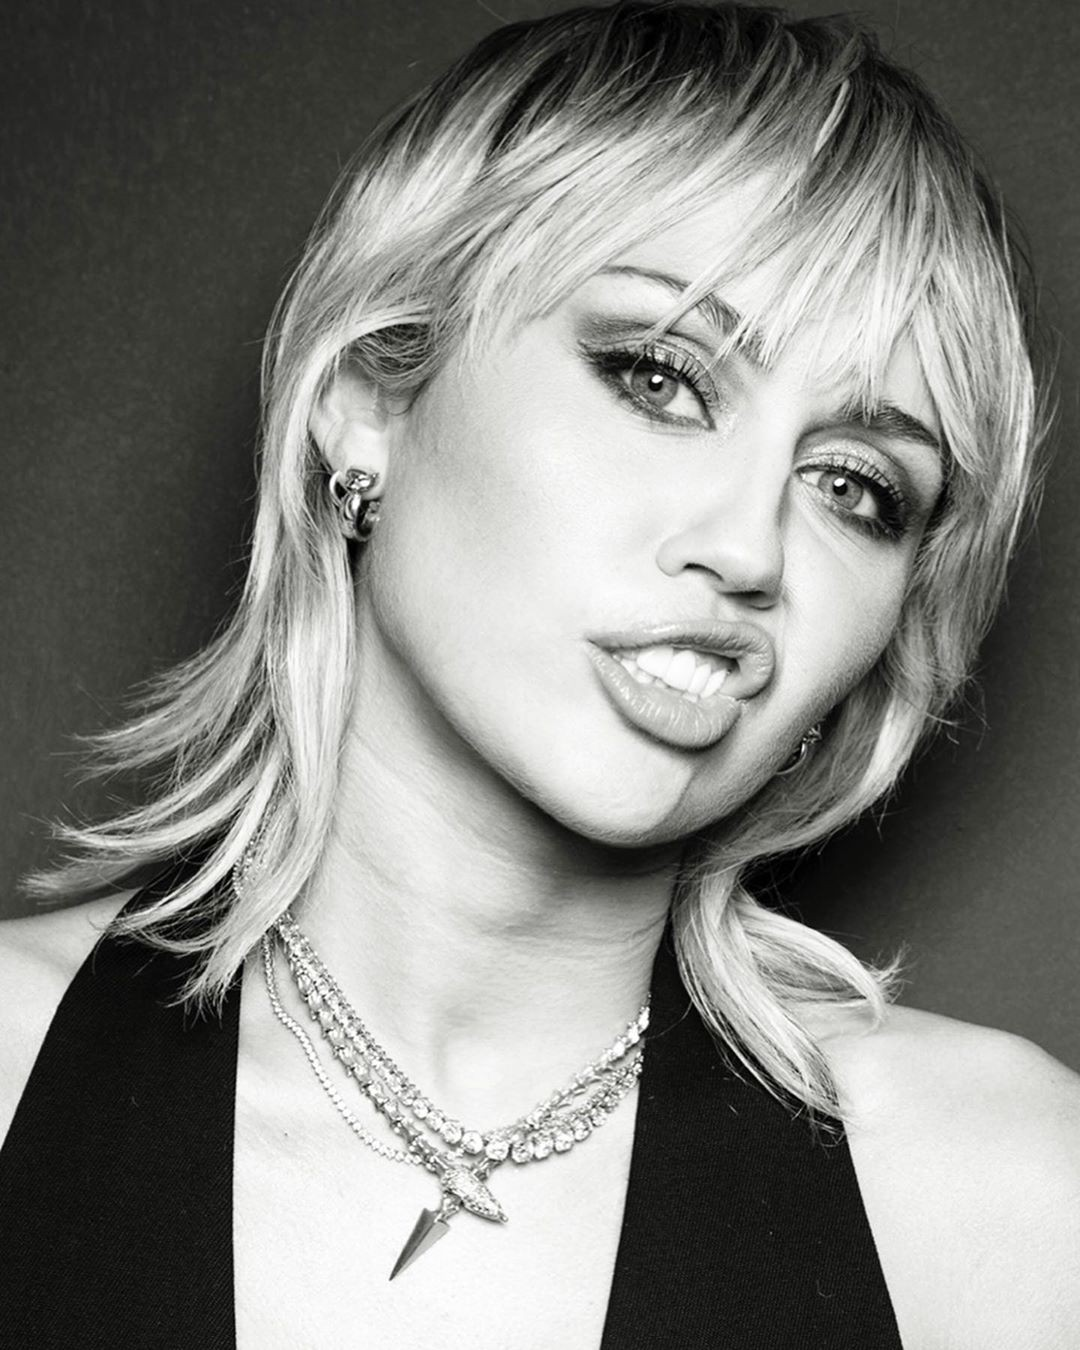 mileycyrus blond hairstyle, Bautiful Face, Lip Makeup